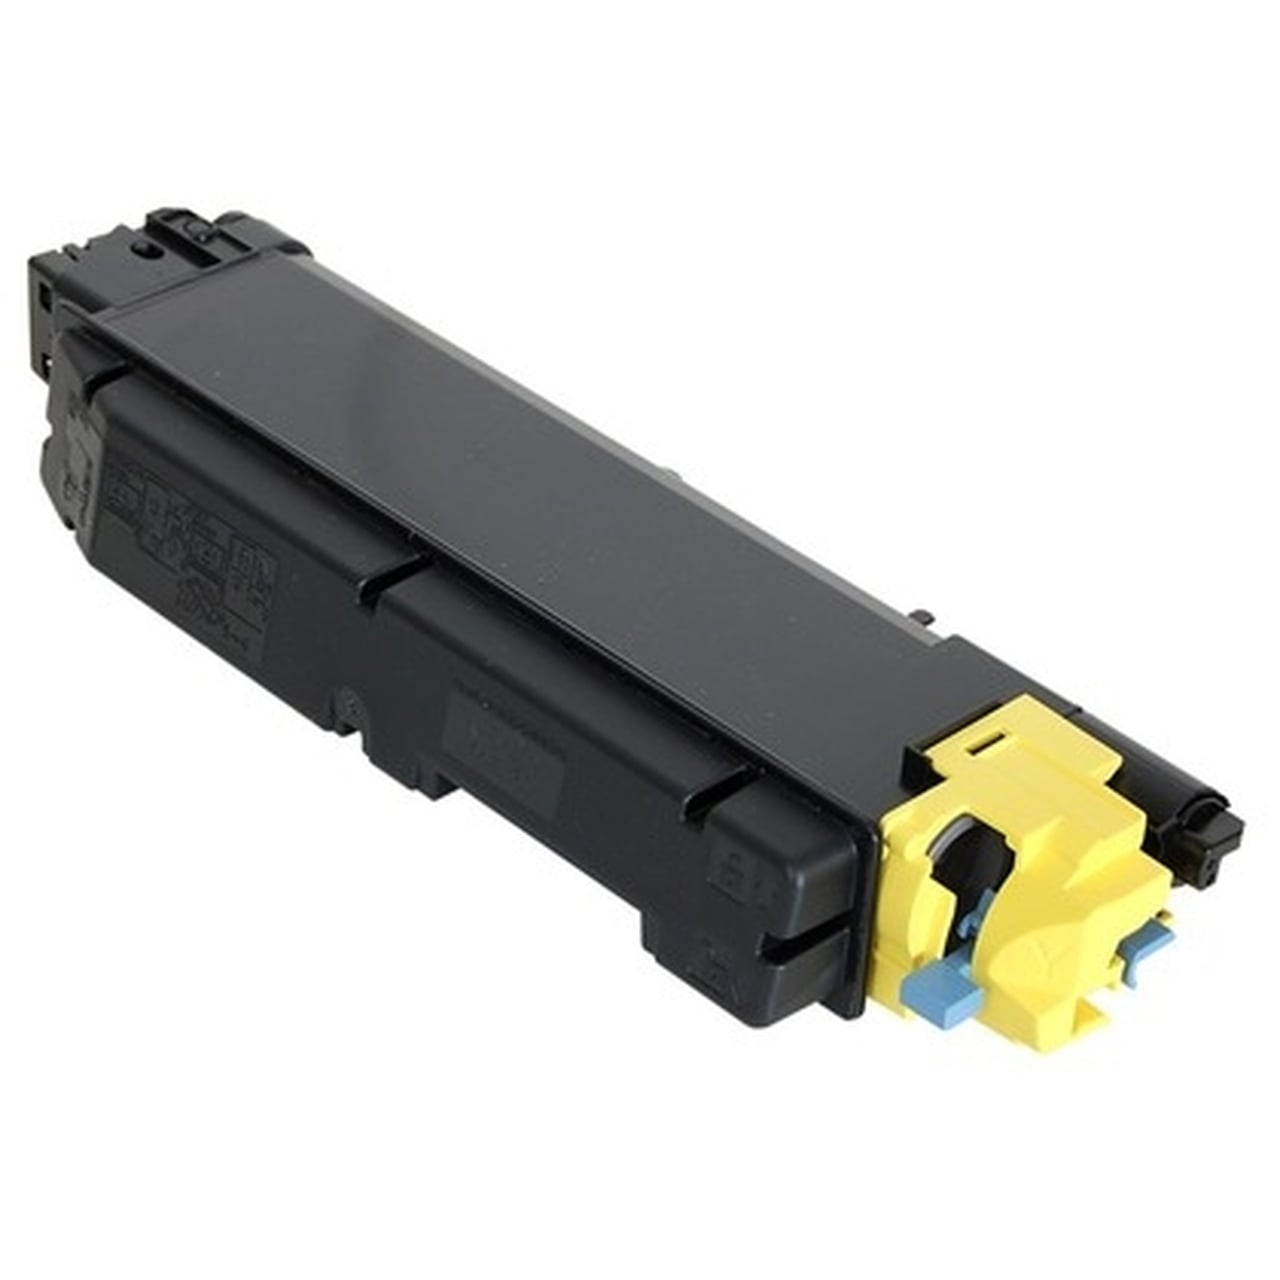 TK-5142Y Toner Cartridge - Kyocera Mita Compatible (Yellow)